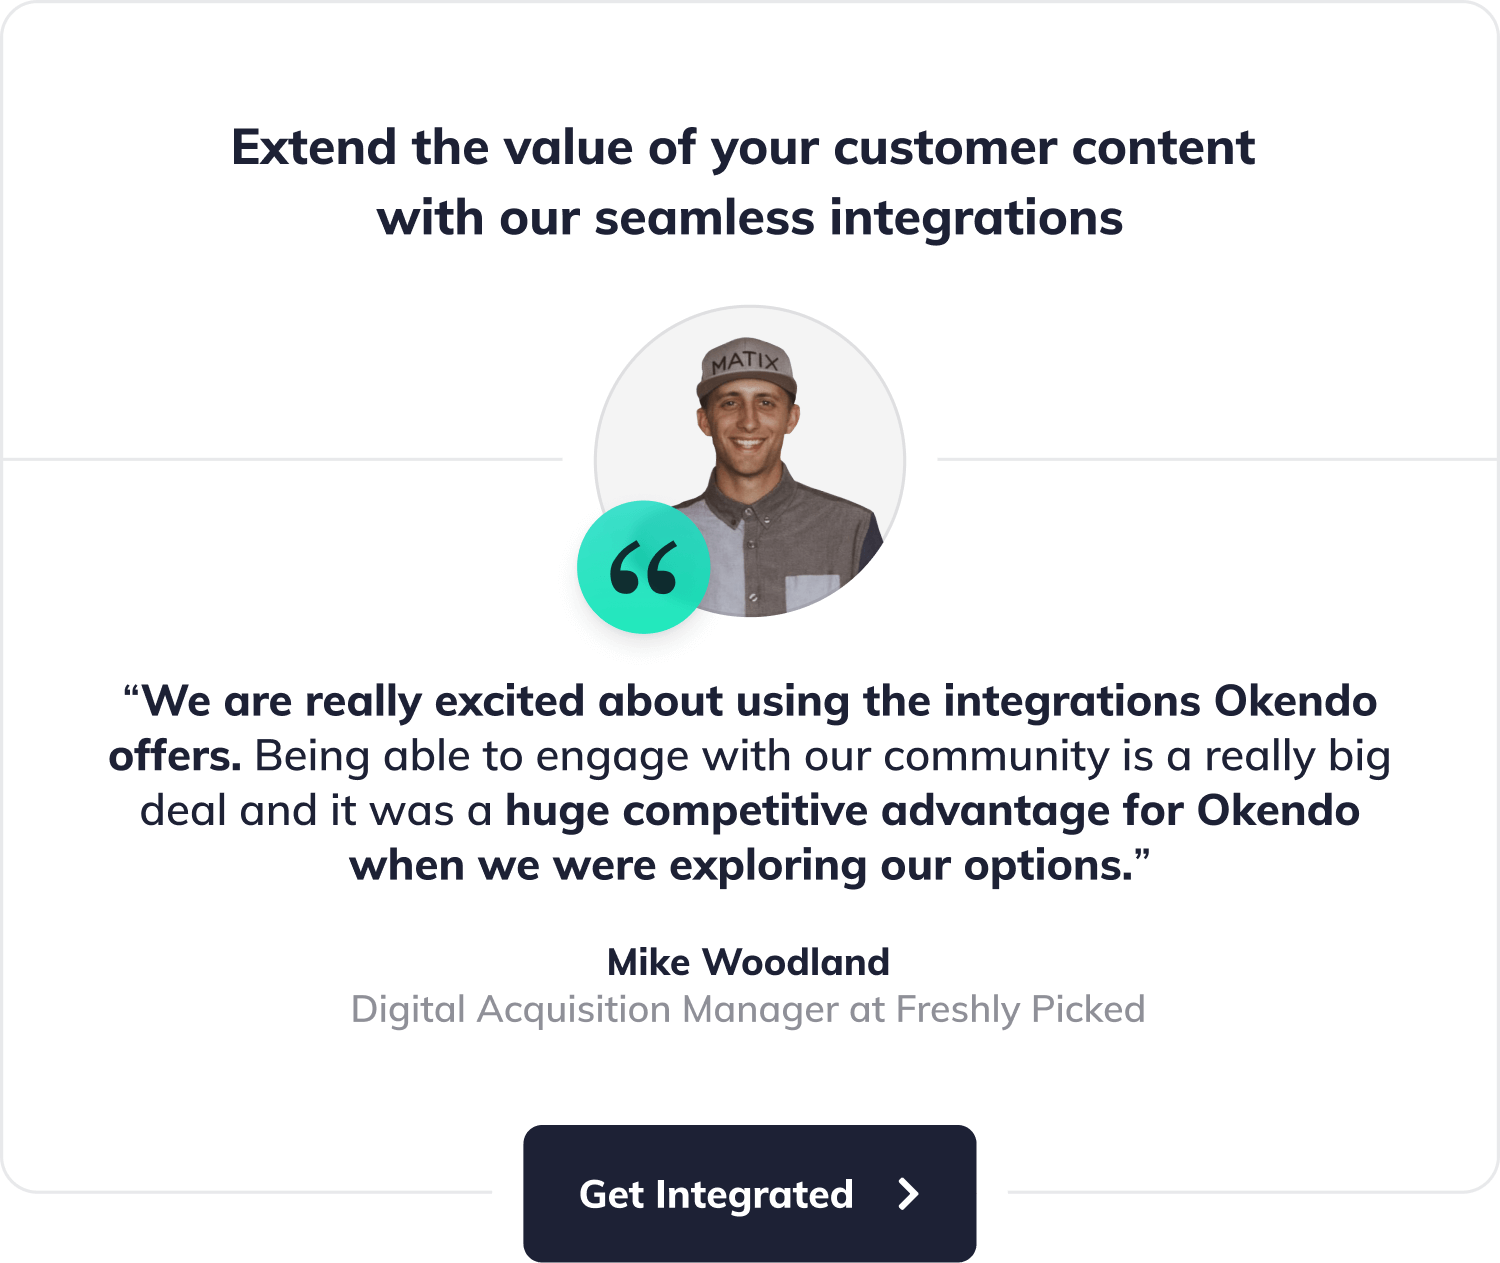 """Extend the value of your customer content with our seamless integrations. """"We are really excited about using the integrations Okendo offers. Being able to engage with our community is a really big deal and it was a huge competitive advantage for Okendo when we were exploring our options"""